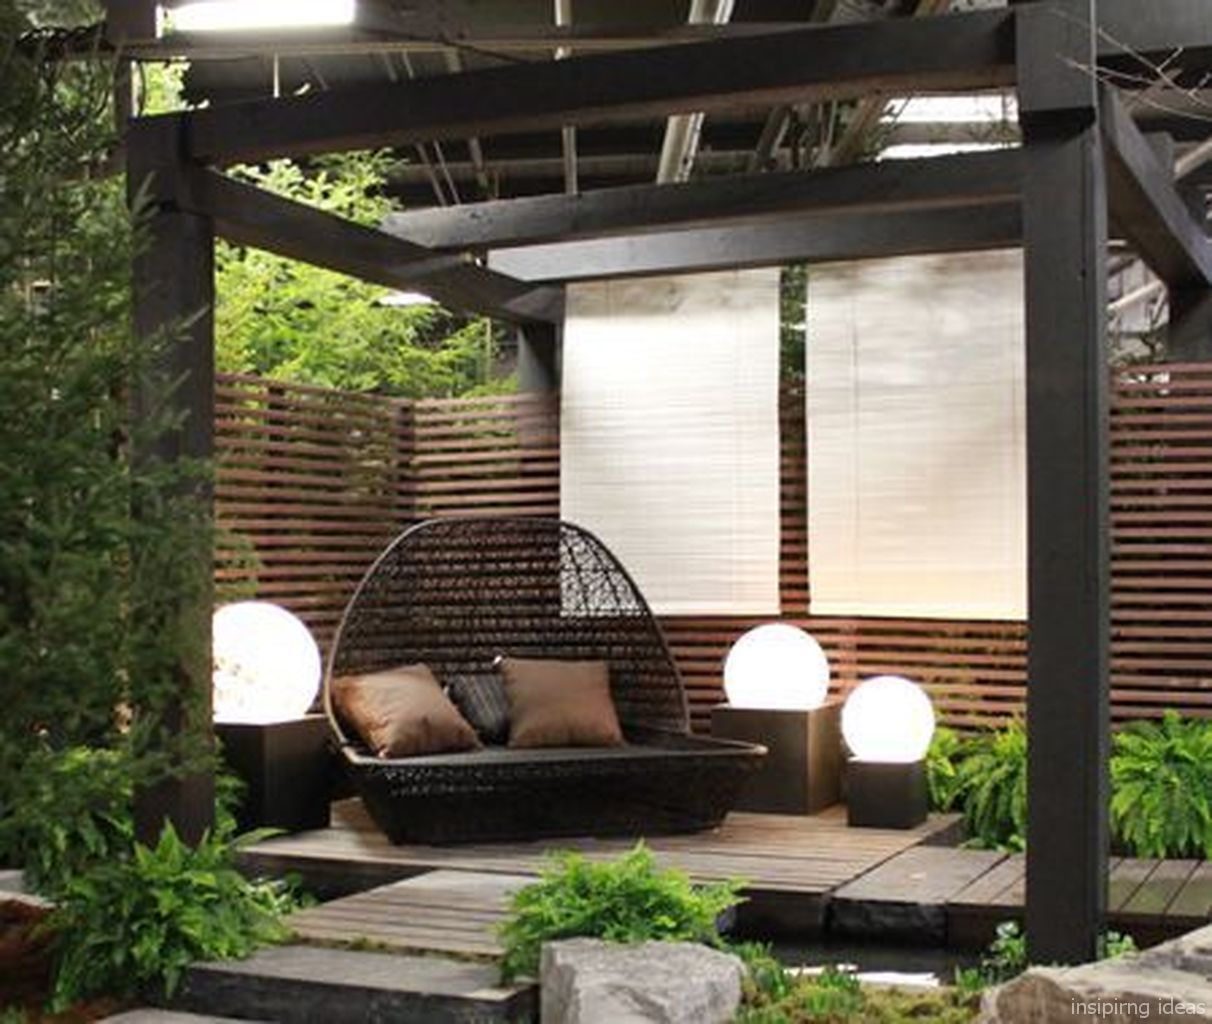 Zona Chill Out Jardin Gorgeous Pergola Ideas For Backyard 92 Backyard Terraza Jardin